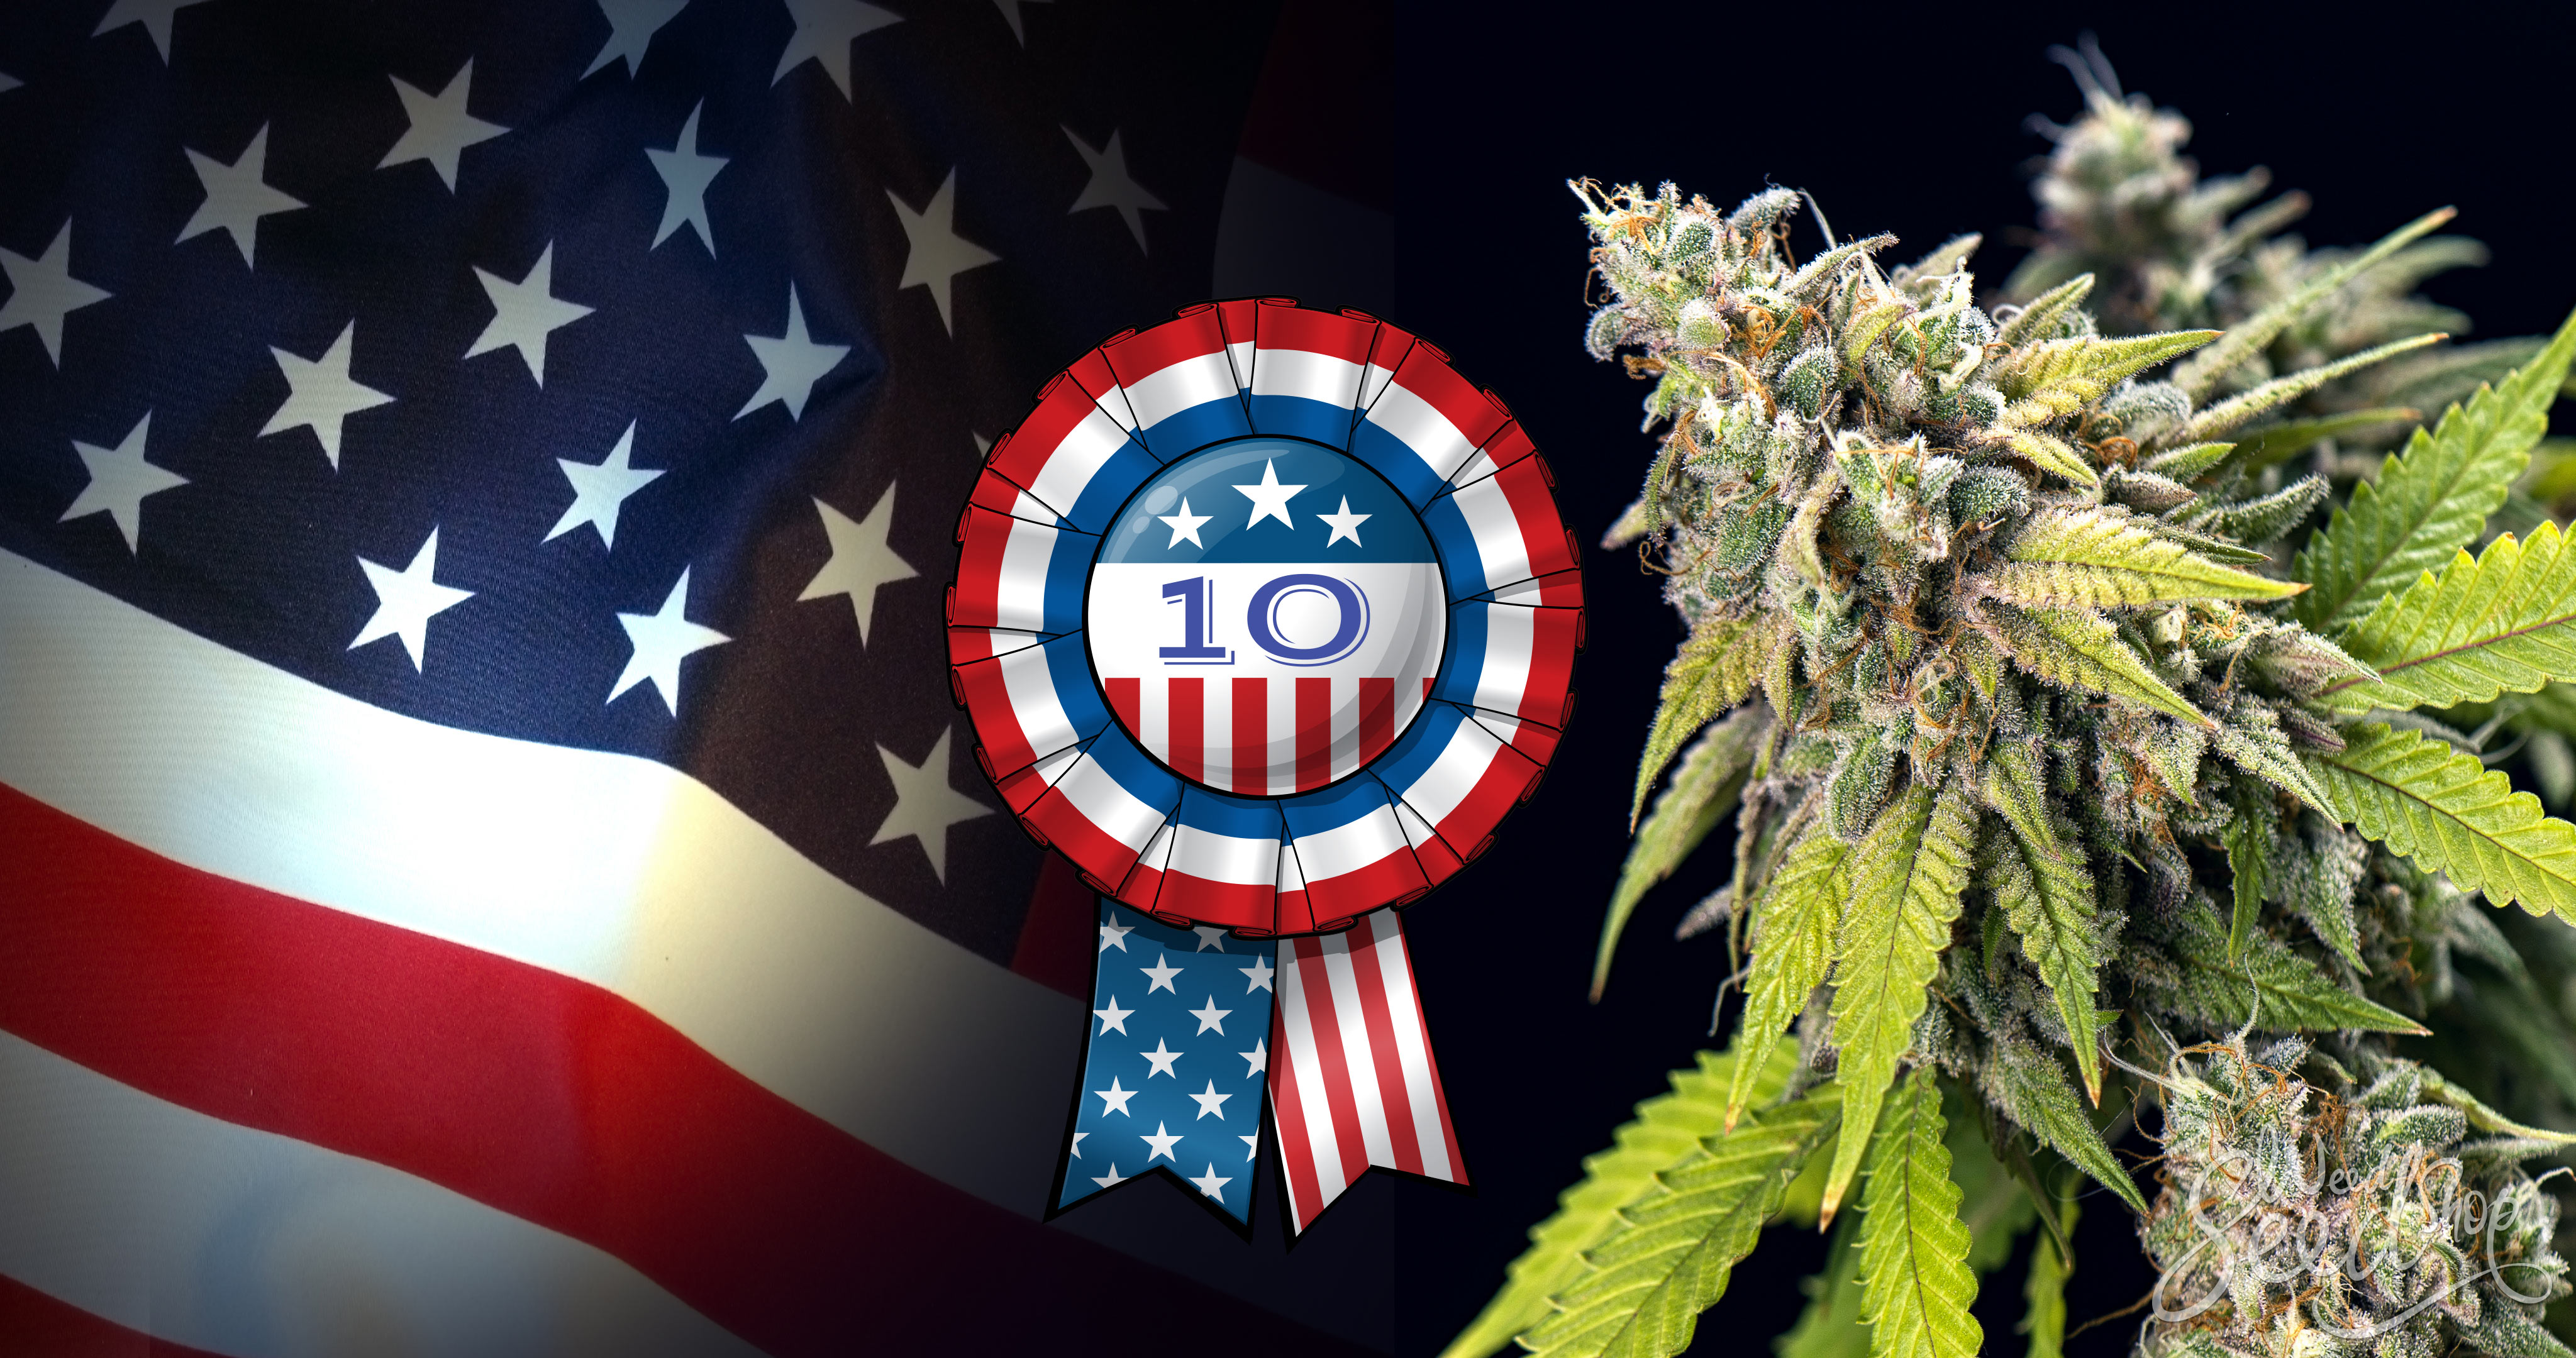 10 Cannabis Strains That Are a Hit in The U.S. - WeedSeedShop Blog